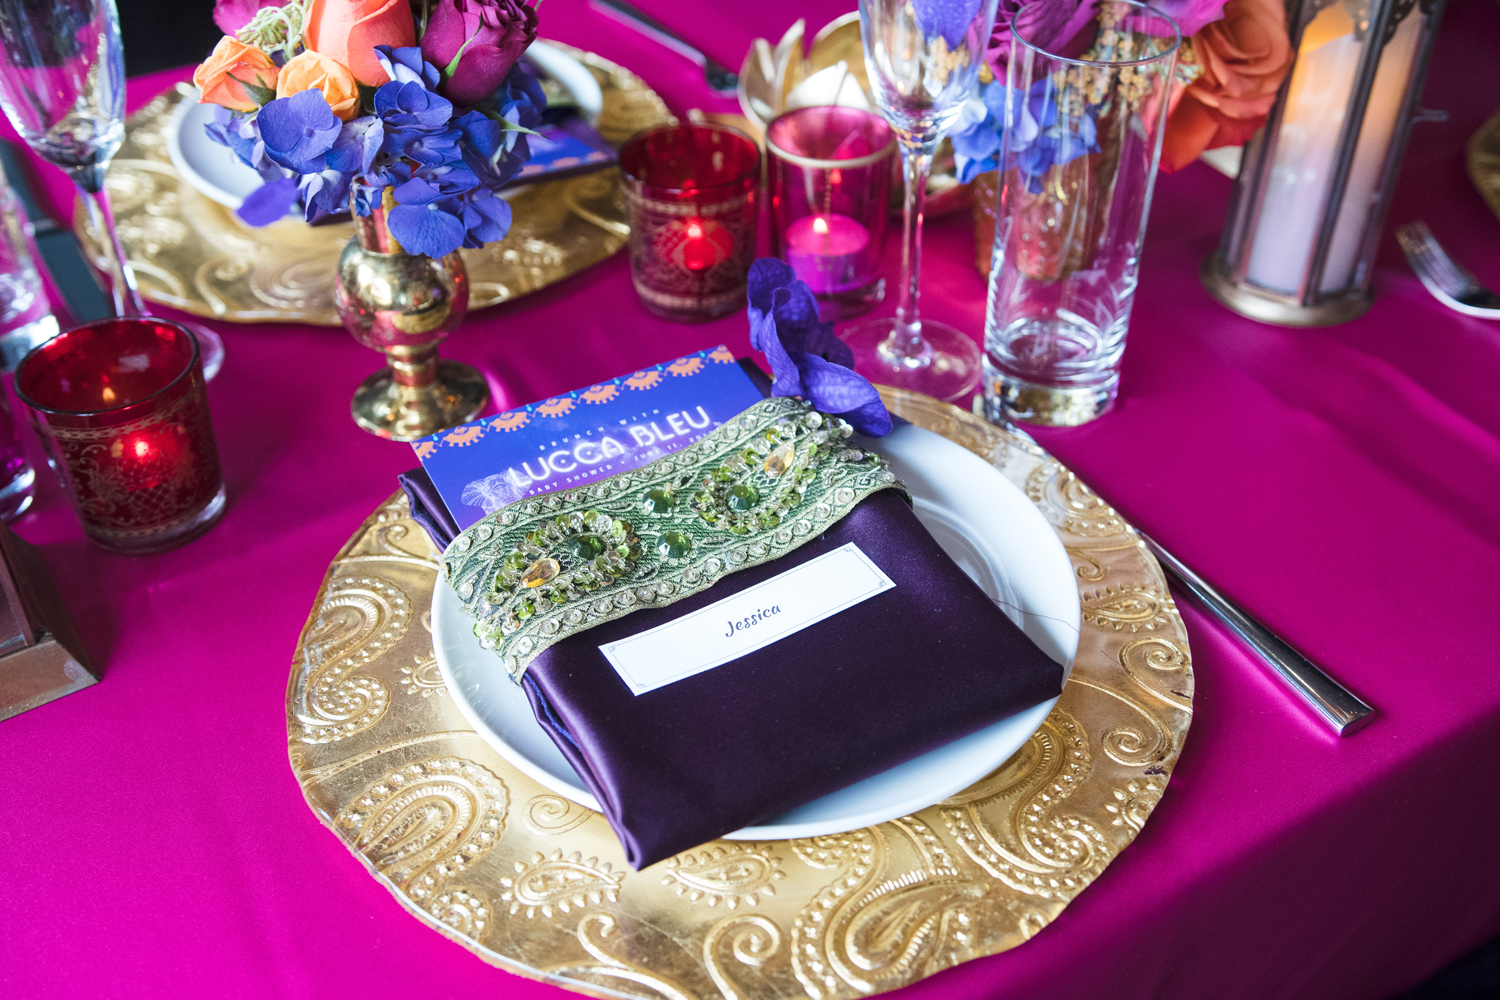 Moroccan Inspired Baby Shower Party custom linens looked beautiful on gold chargers.jpg